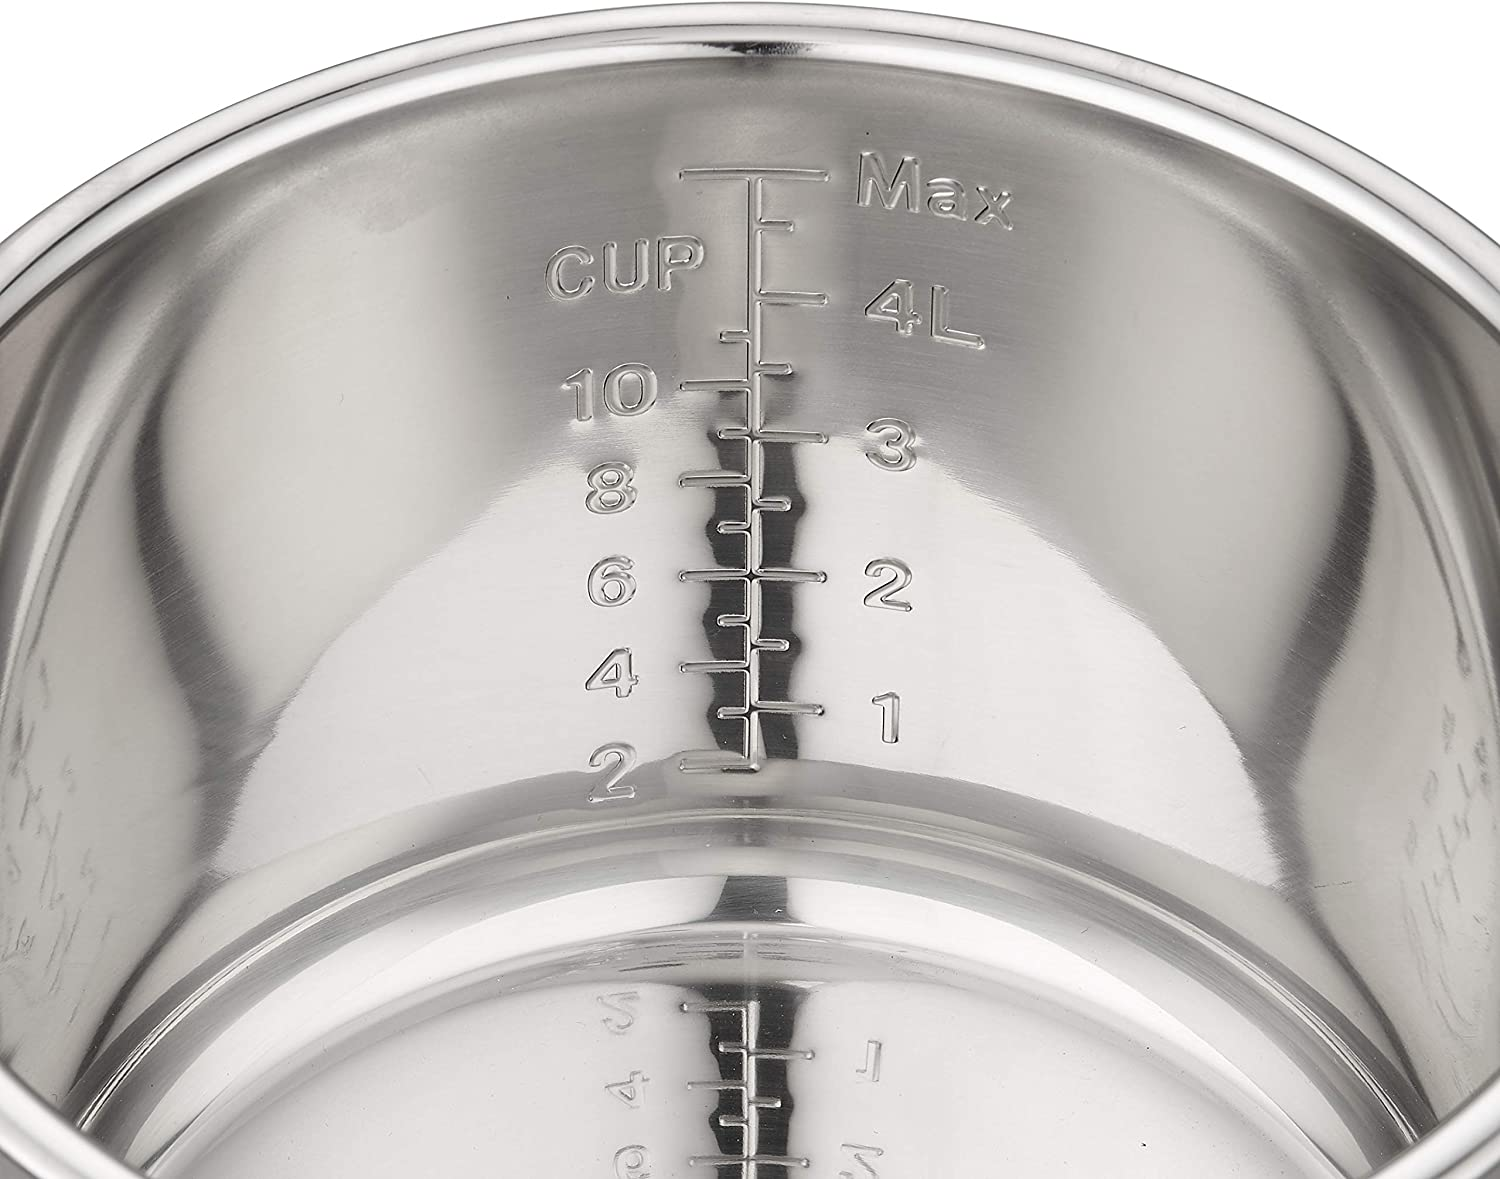 GJS Gourmet Stainless Steel Inner Pot Compatible with 6-Quart Yedi Total Package 9-in-1 Instant Pressure Cooker GV001 This pot is not created or sold by Yedi. 6 Quart, Stainless Steel